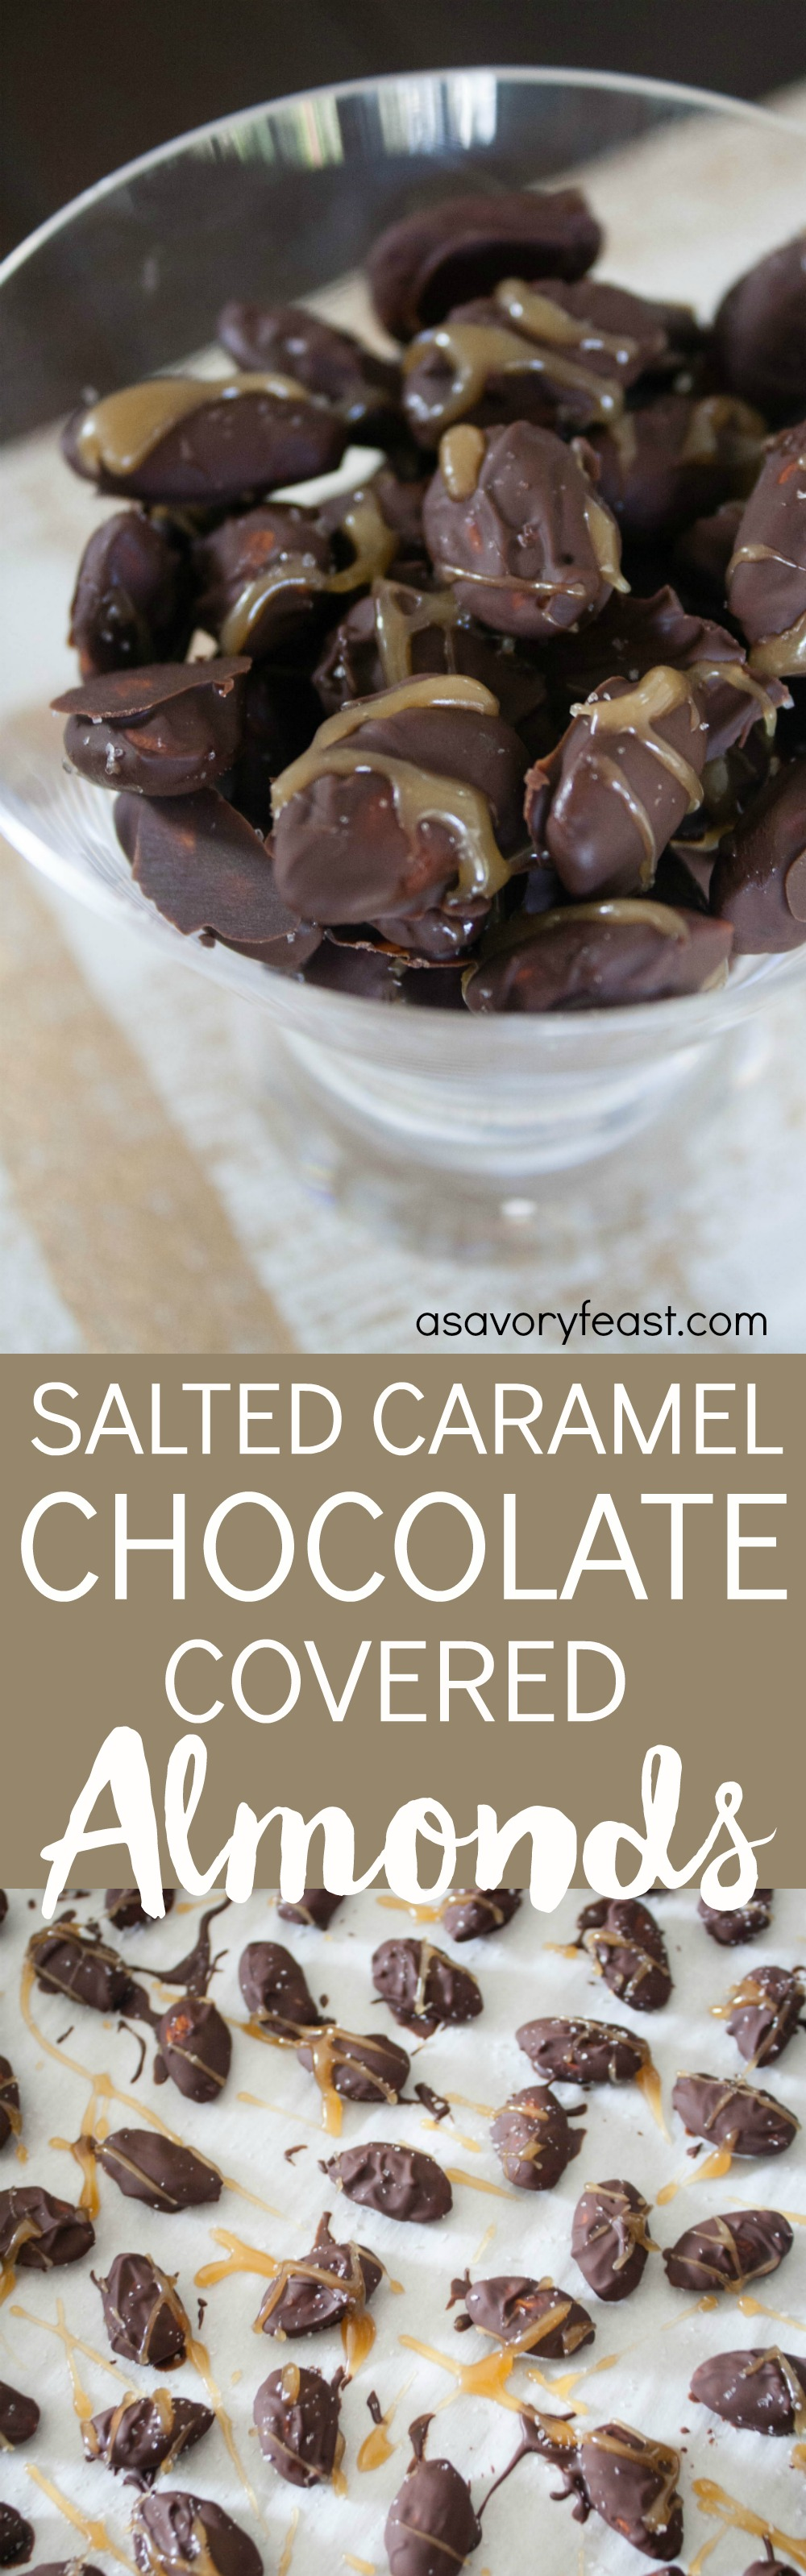 Salted Caramel Chocolate-Covered Almonds